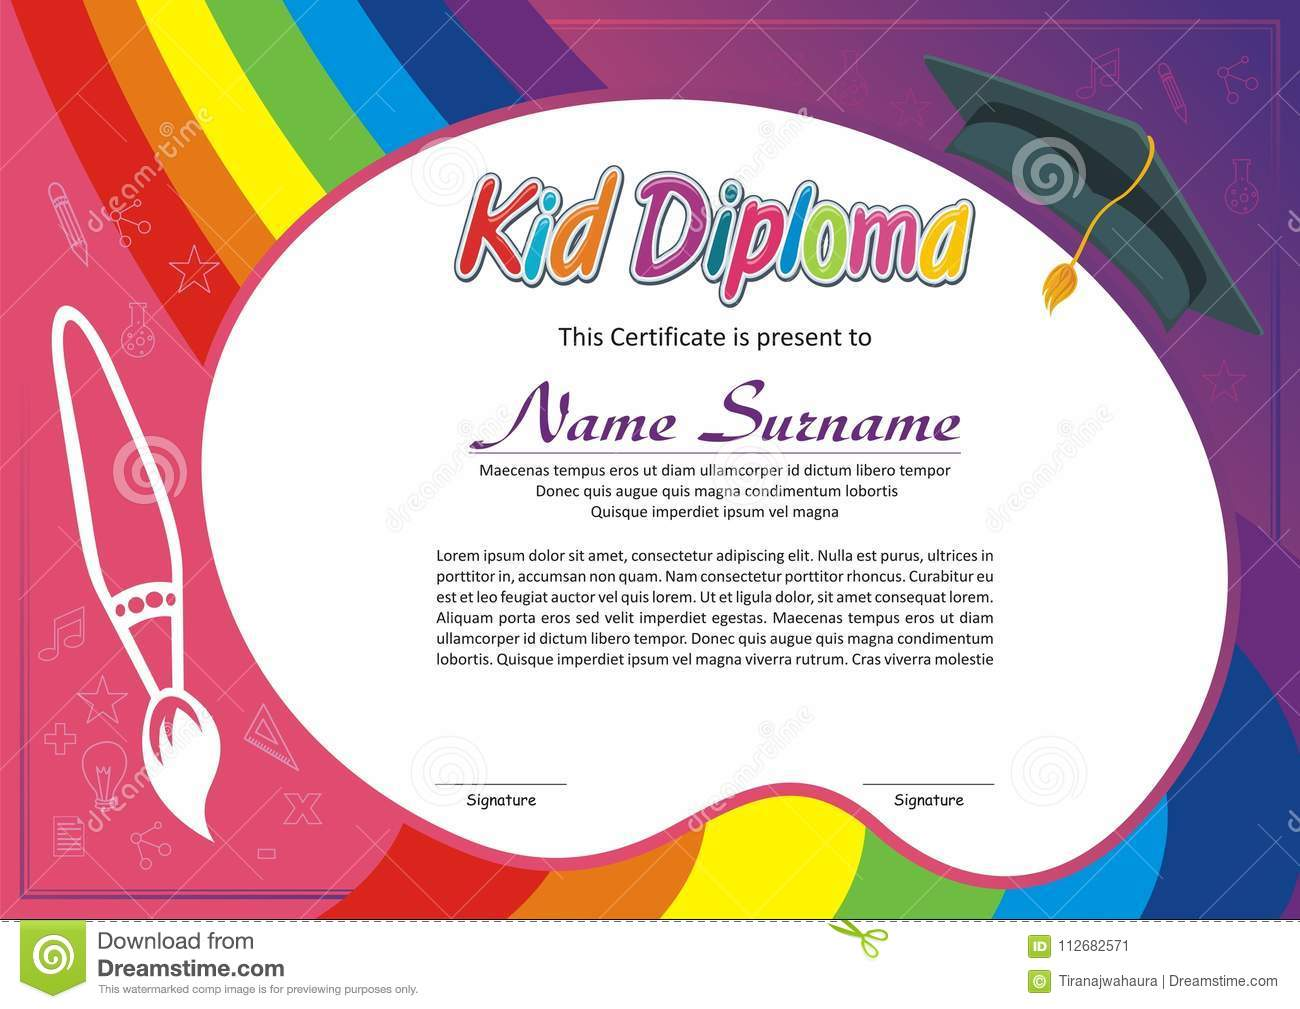 Preschool Kindergarten Lovely Kid Diploma Certificate Template Design With Cute And Adorable Color Design Suitable And Definitely Very Interesting For